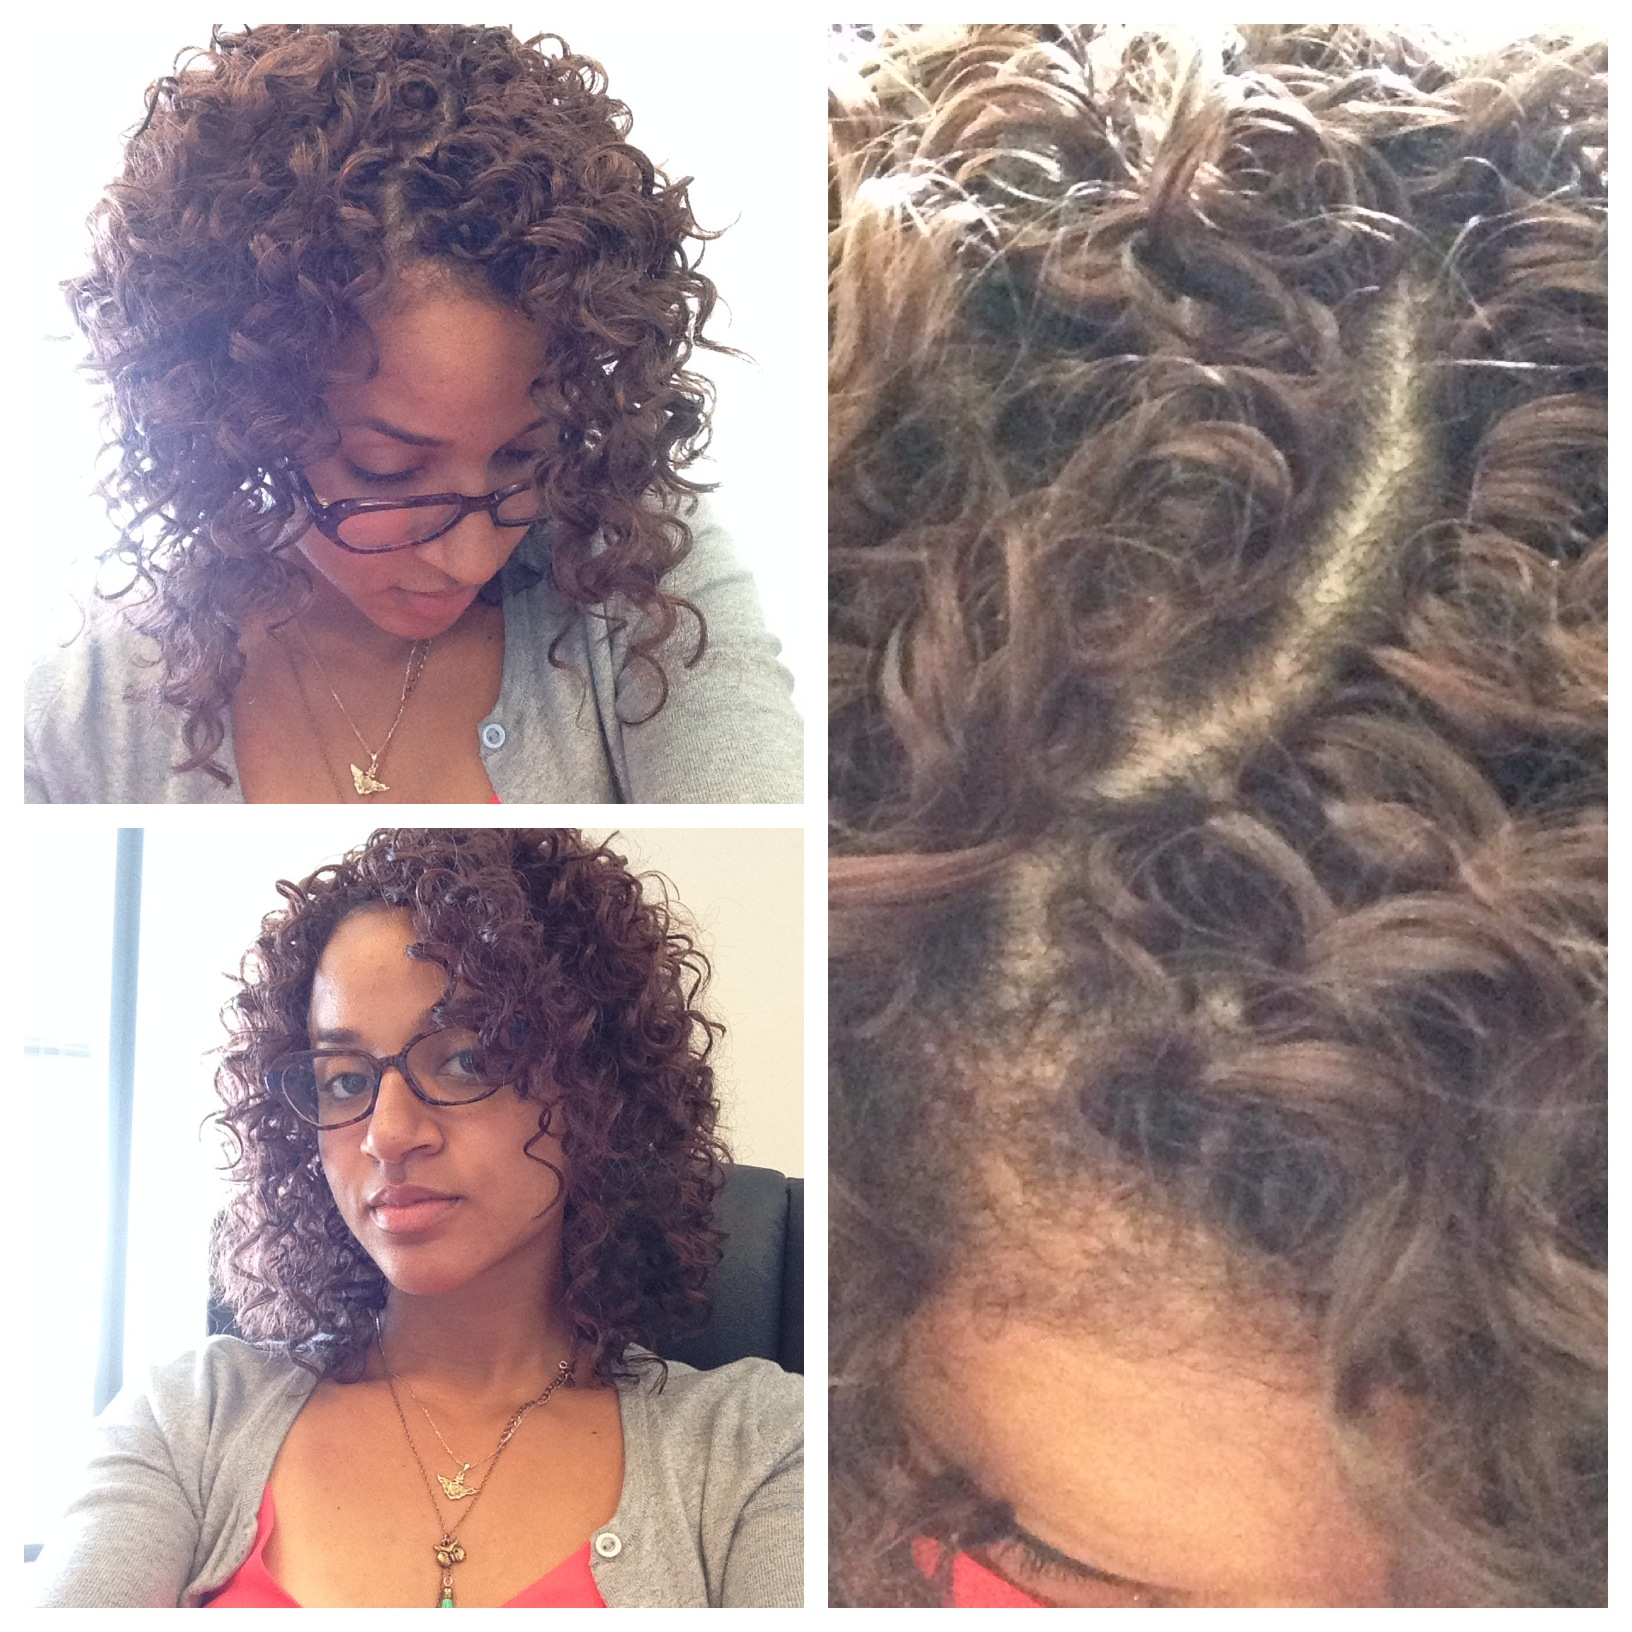 Crochet Hair Pre Curled : Weave Chronicles: Freetress Gogo Curl Braid #33 - TamThyme